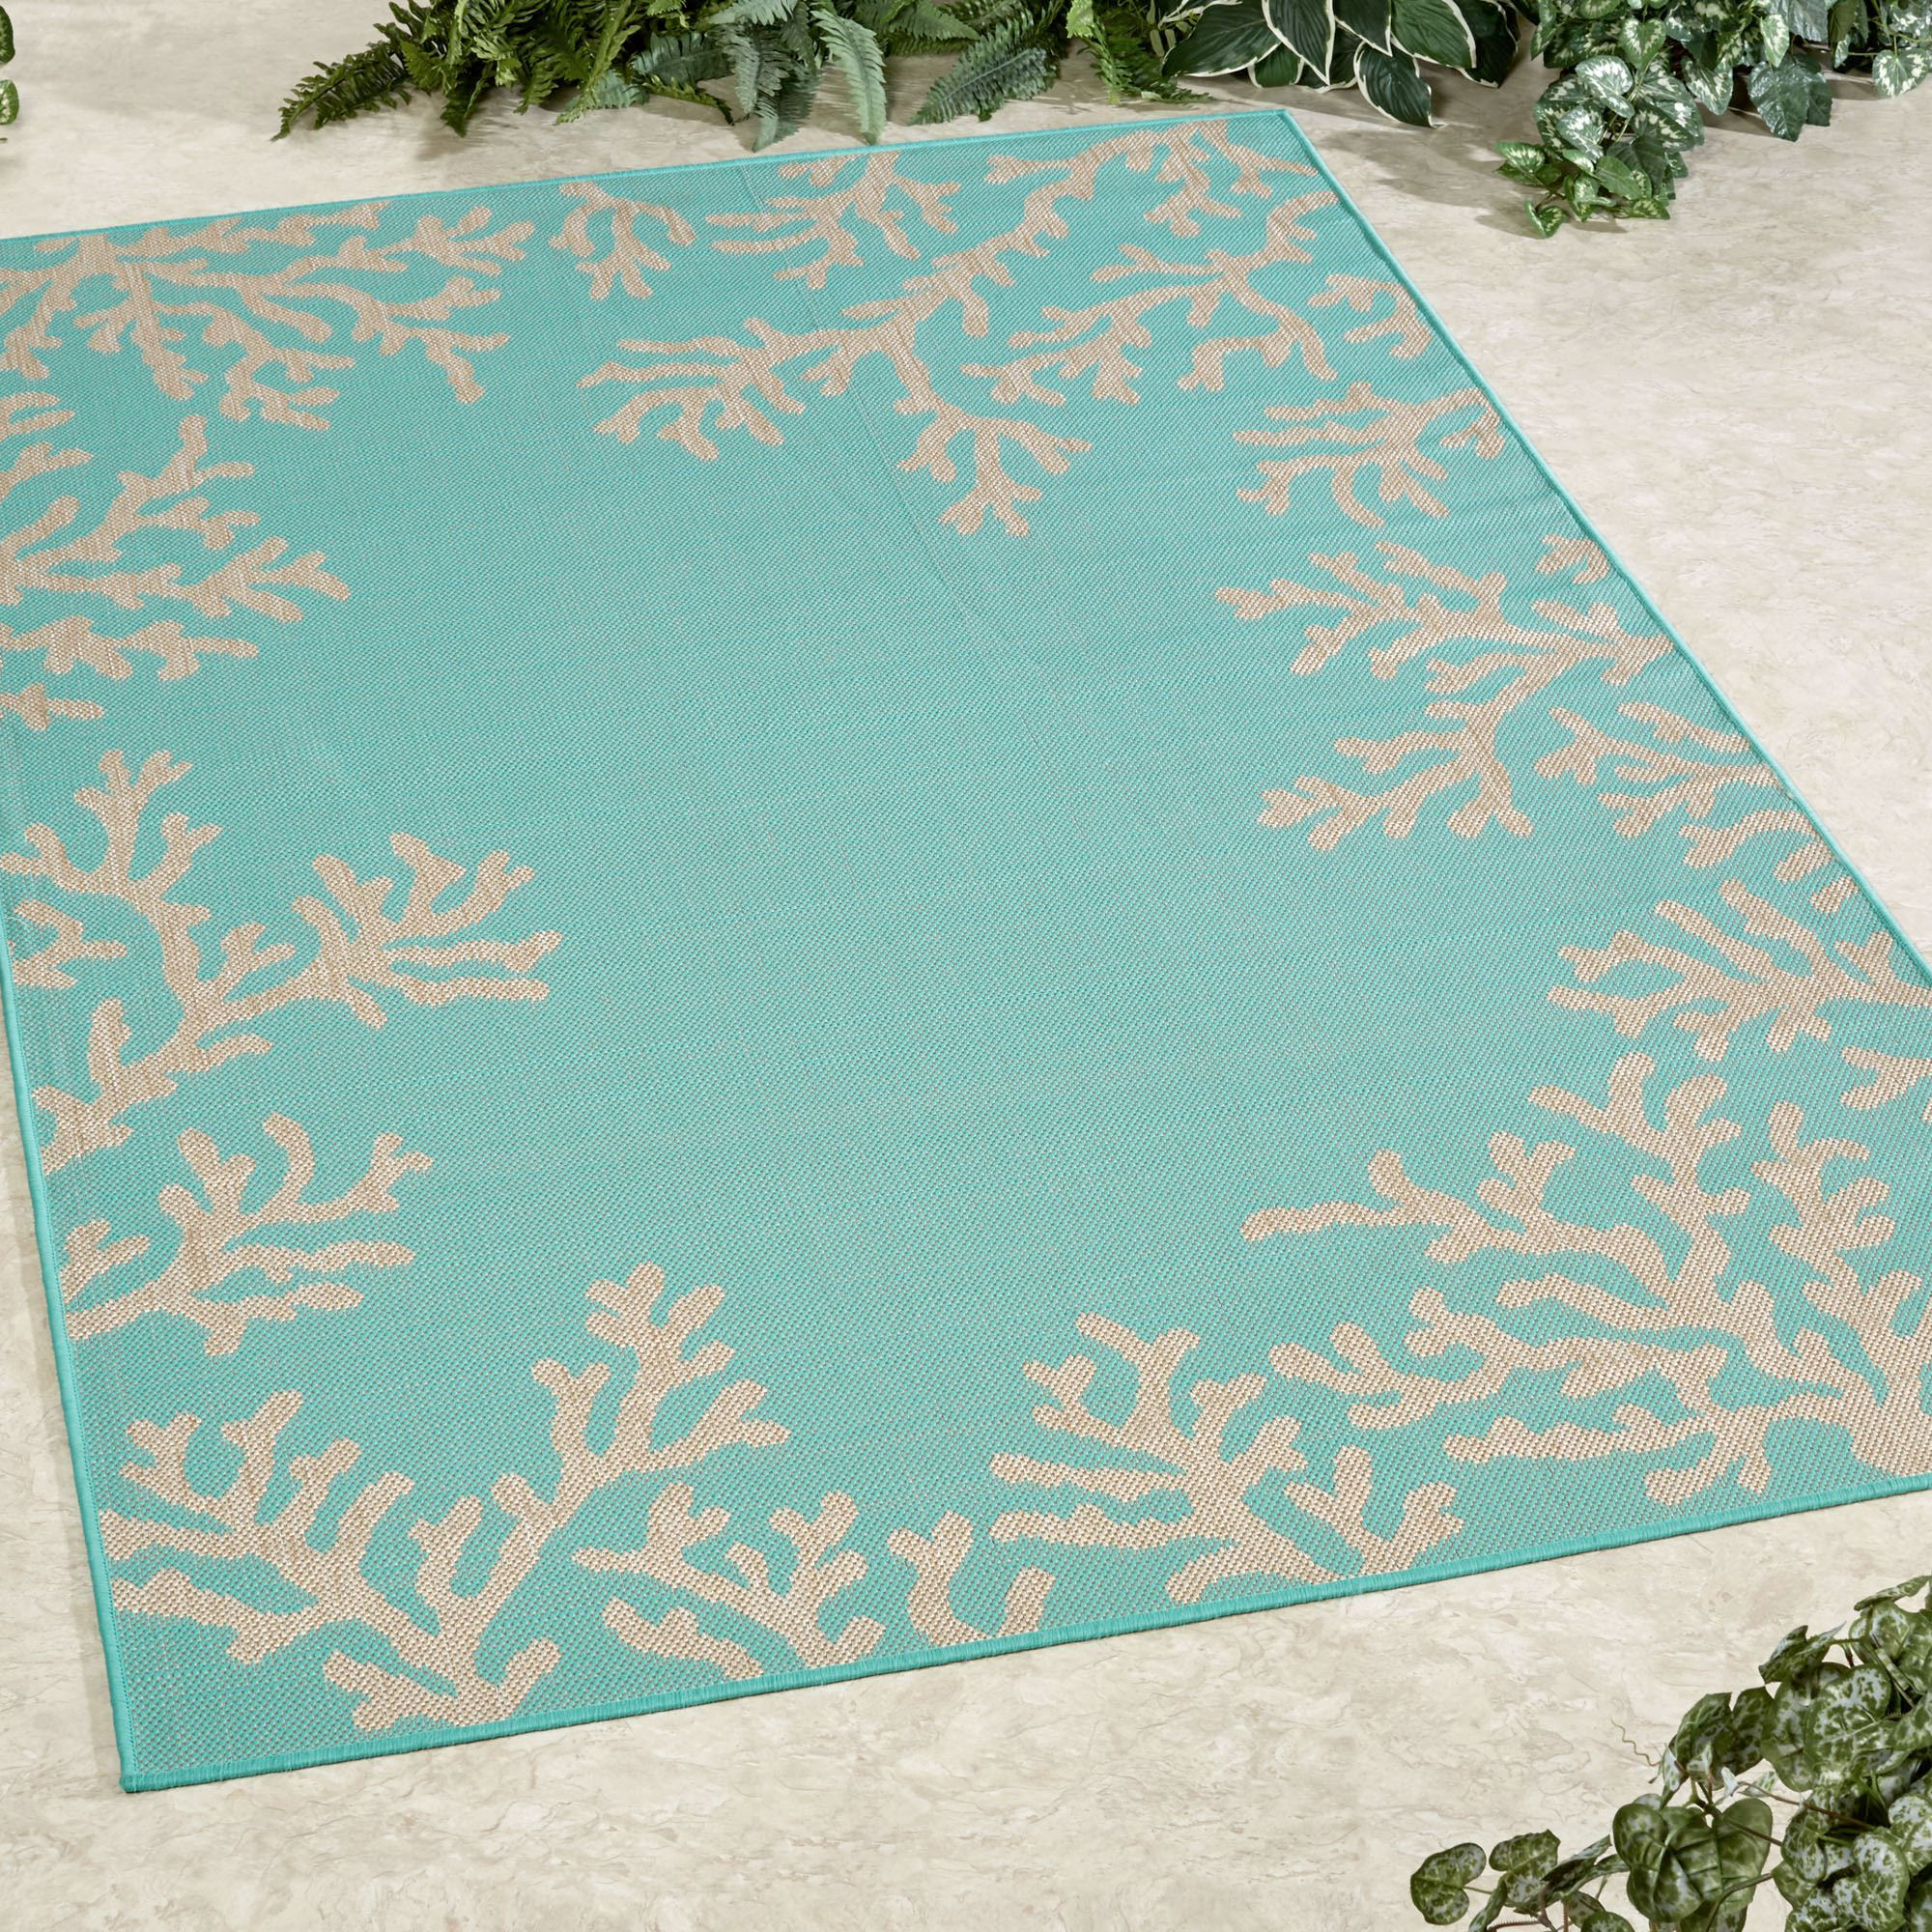 Barrier Reef Indoor Outdoor Rugs by Liora Manne